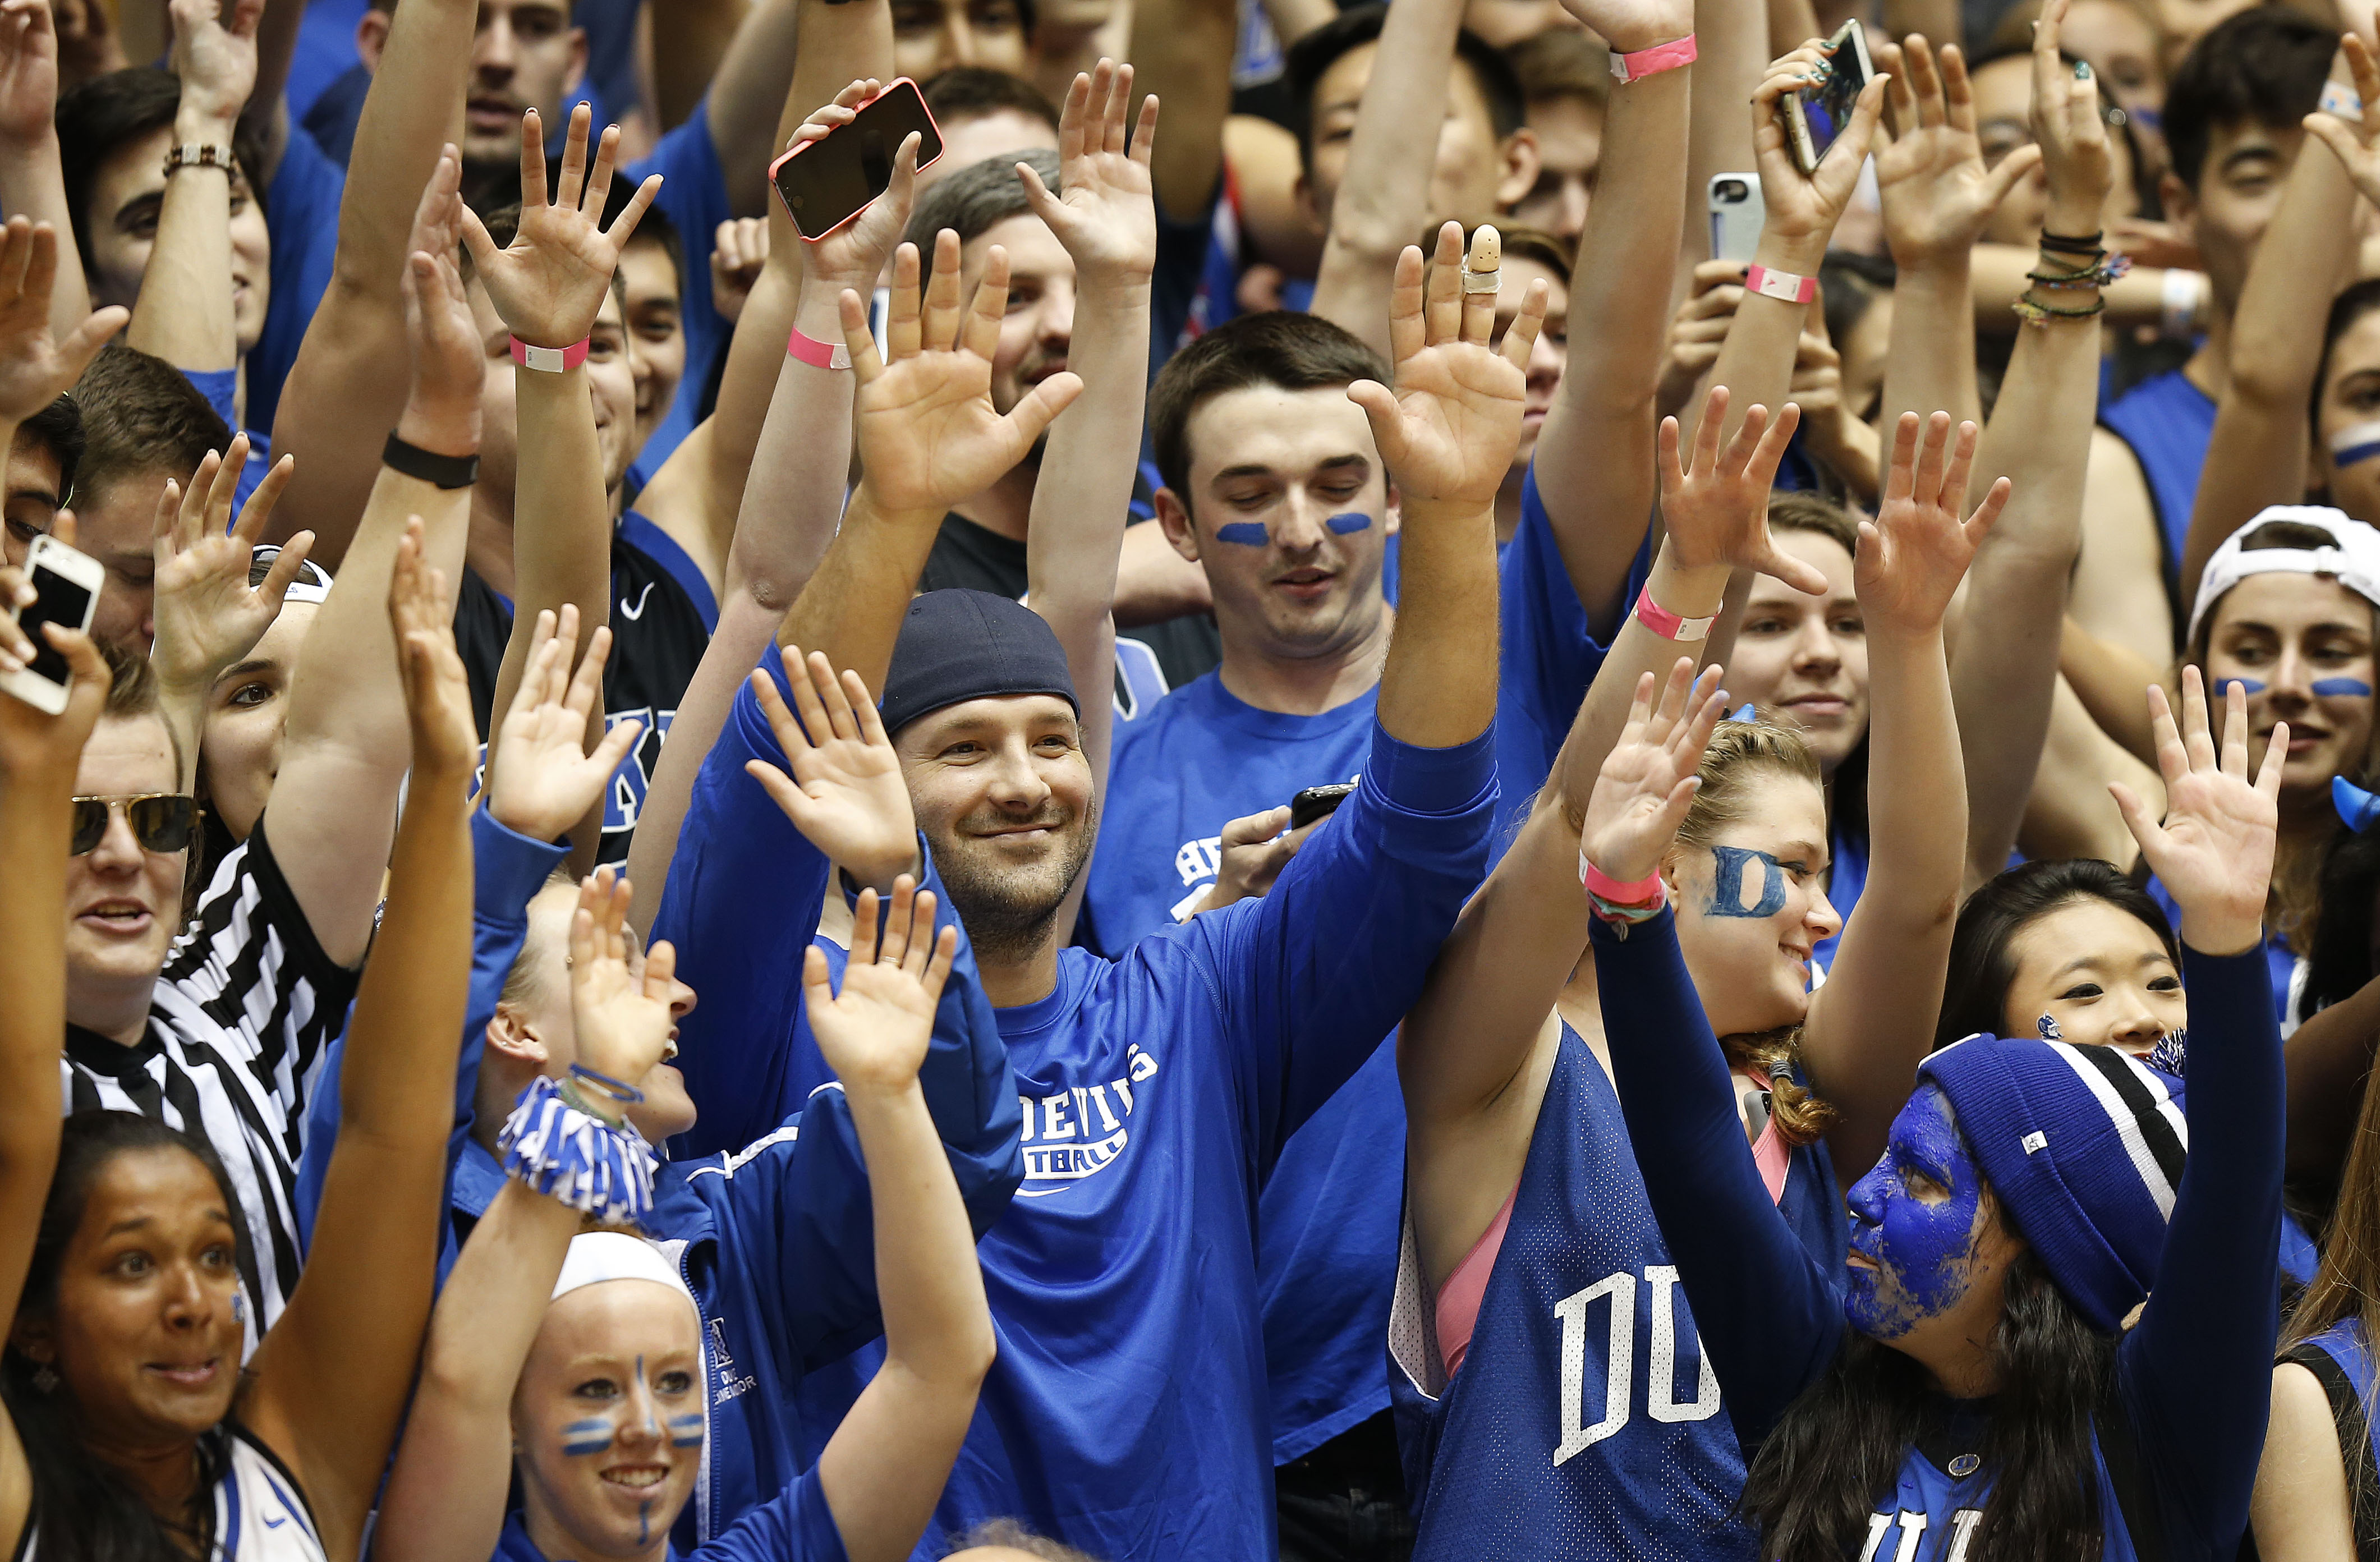 Dallas Cowboys quarterback Tony Romo, center left with baseball cap, cheers with the Cameron Crazies during the second half of Duke's NCAA college basketball game against Wake Forest on Wednesday, March 4, 2015, in Durham, N.C. Duke won 94-51. (AP Photo/Ellen Ozier)